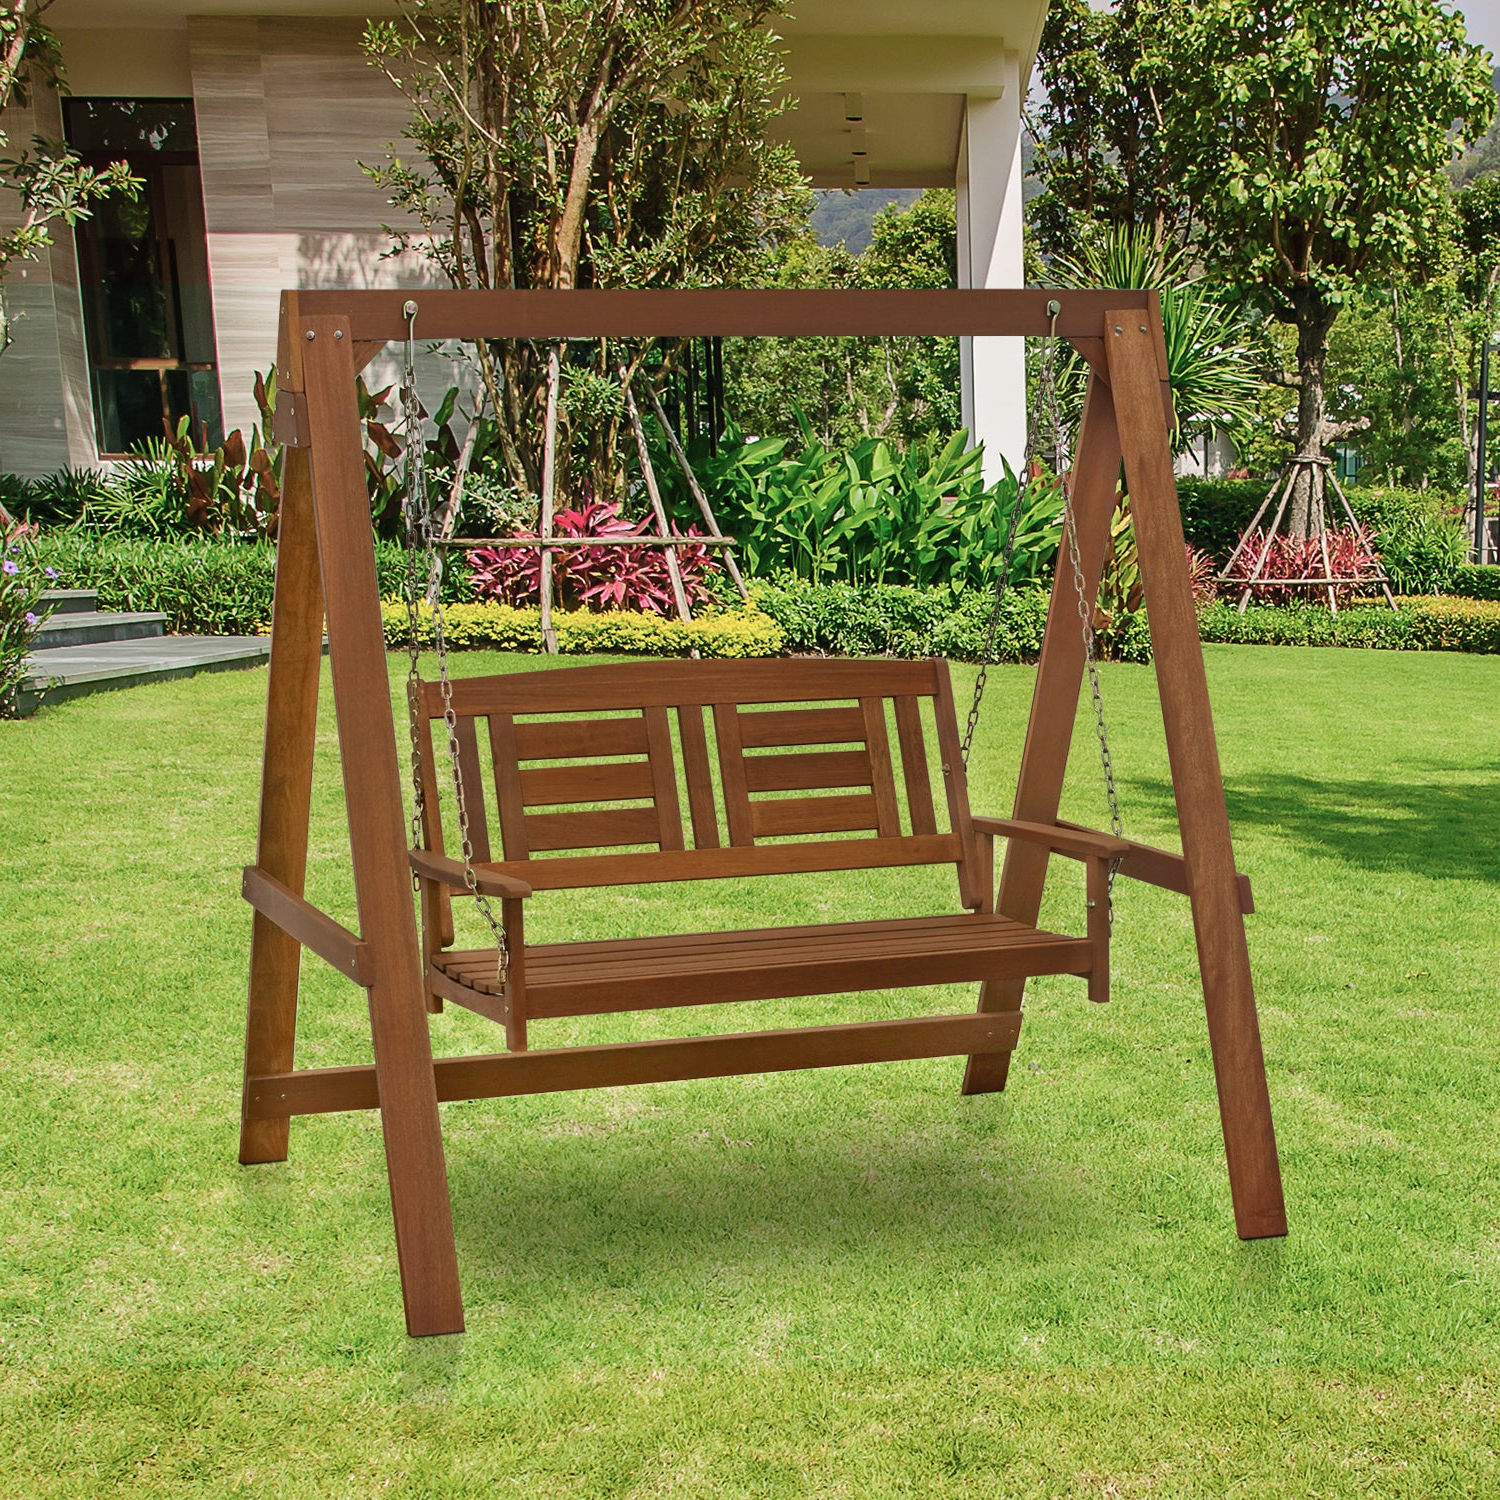 Hardwood Hanging Porch Swings With Stand With Regard To Preferred Buy Wood Furinno Hammocks & Porch Swings Online At Overstock (View 16 of 30)